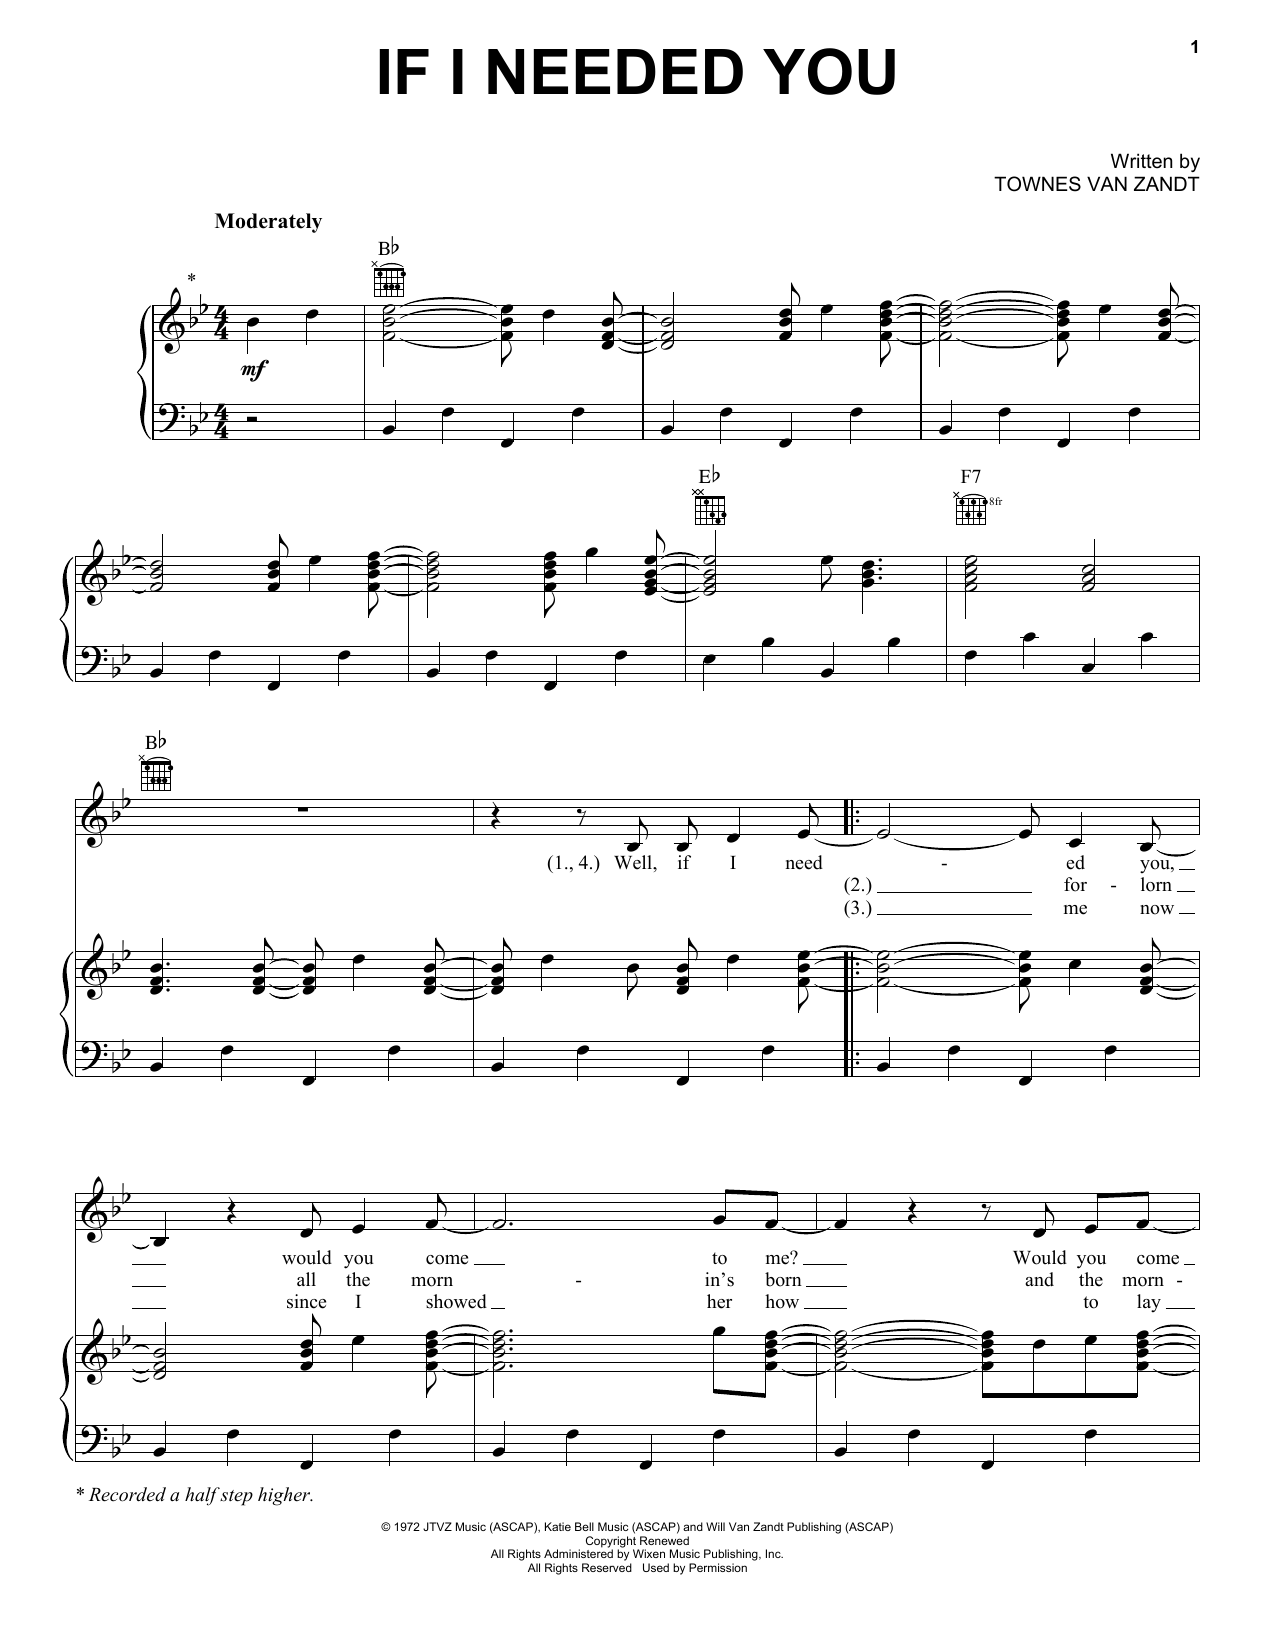 If I Needed You Piano Sheet Music By Townes Van Zandt Piano Voice